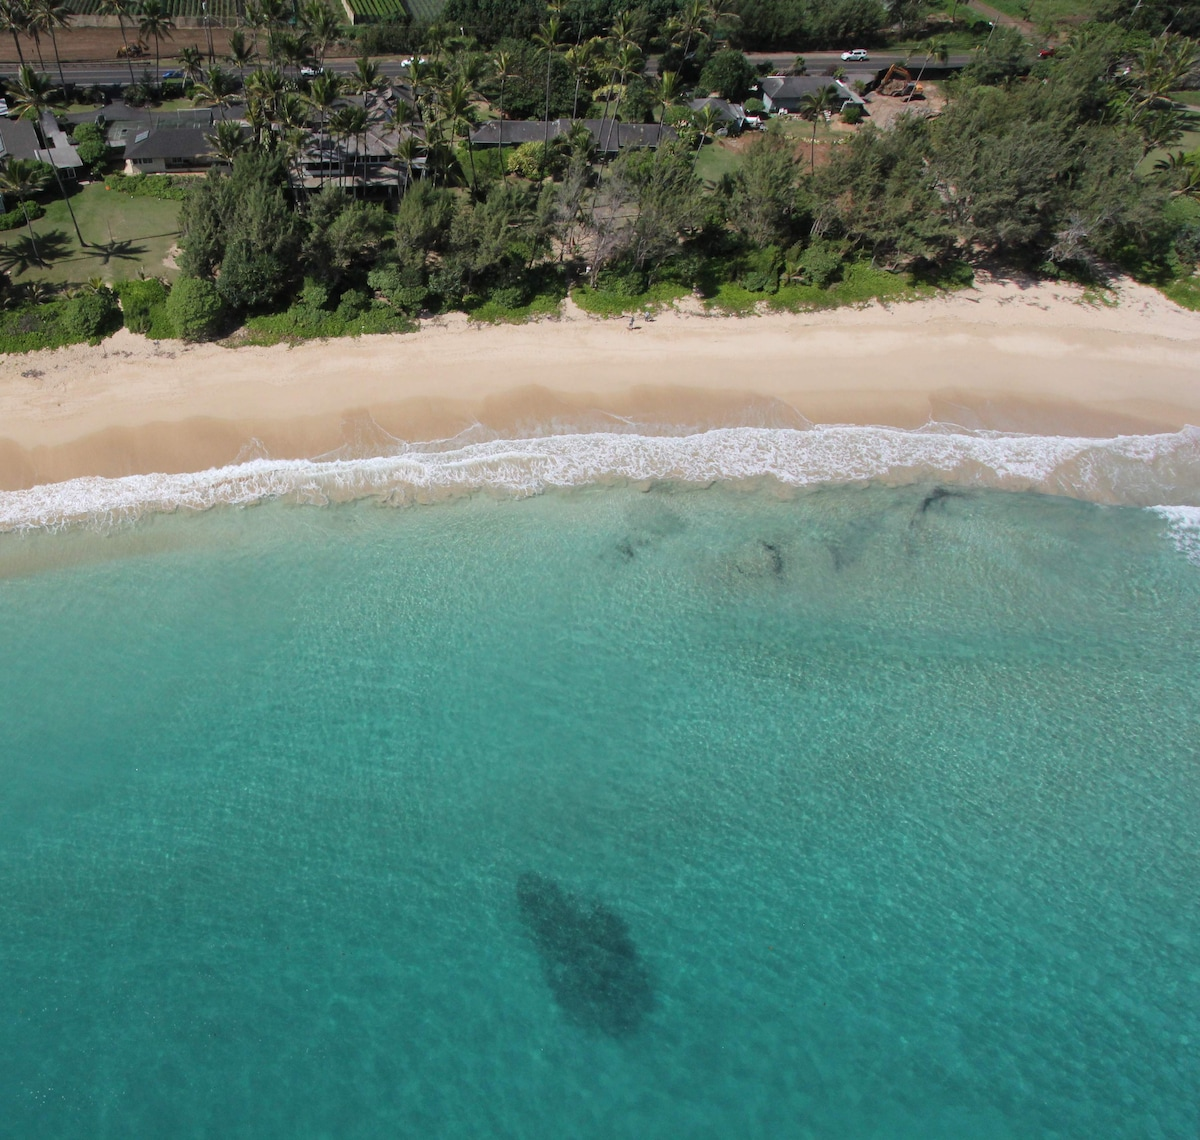 Aerial view showing sandy beach great for kids/swimming.